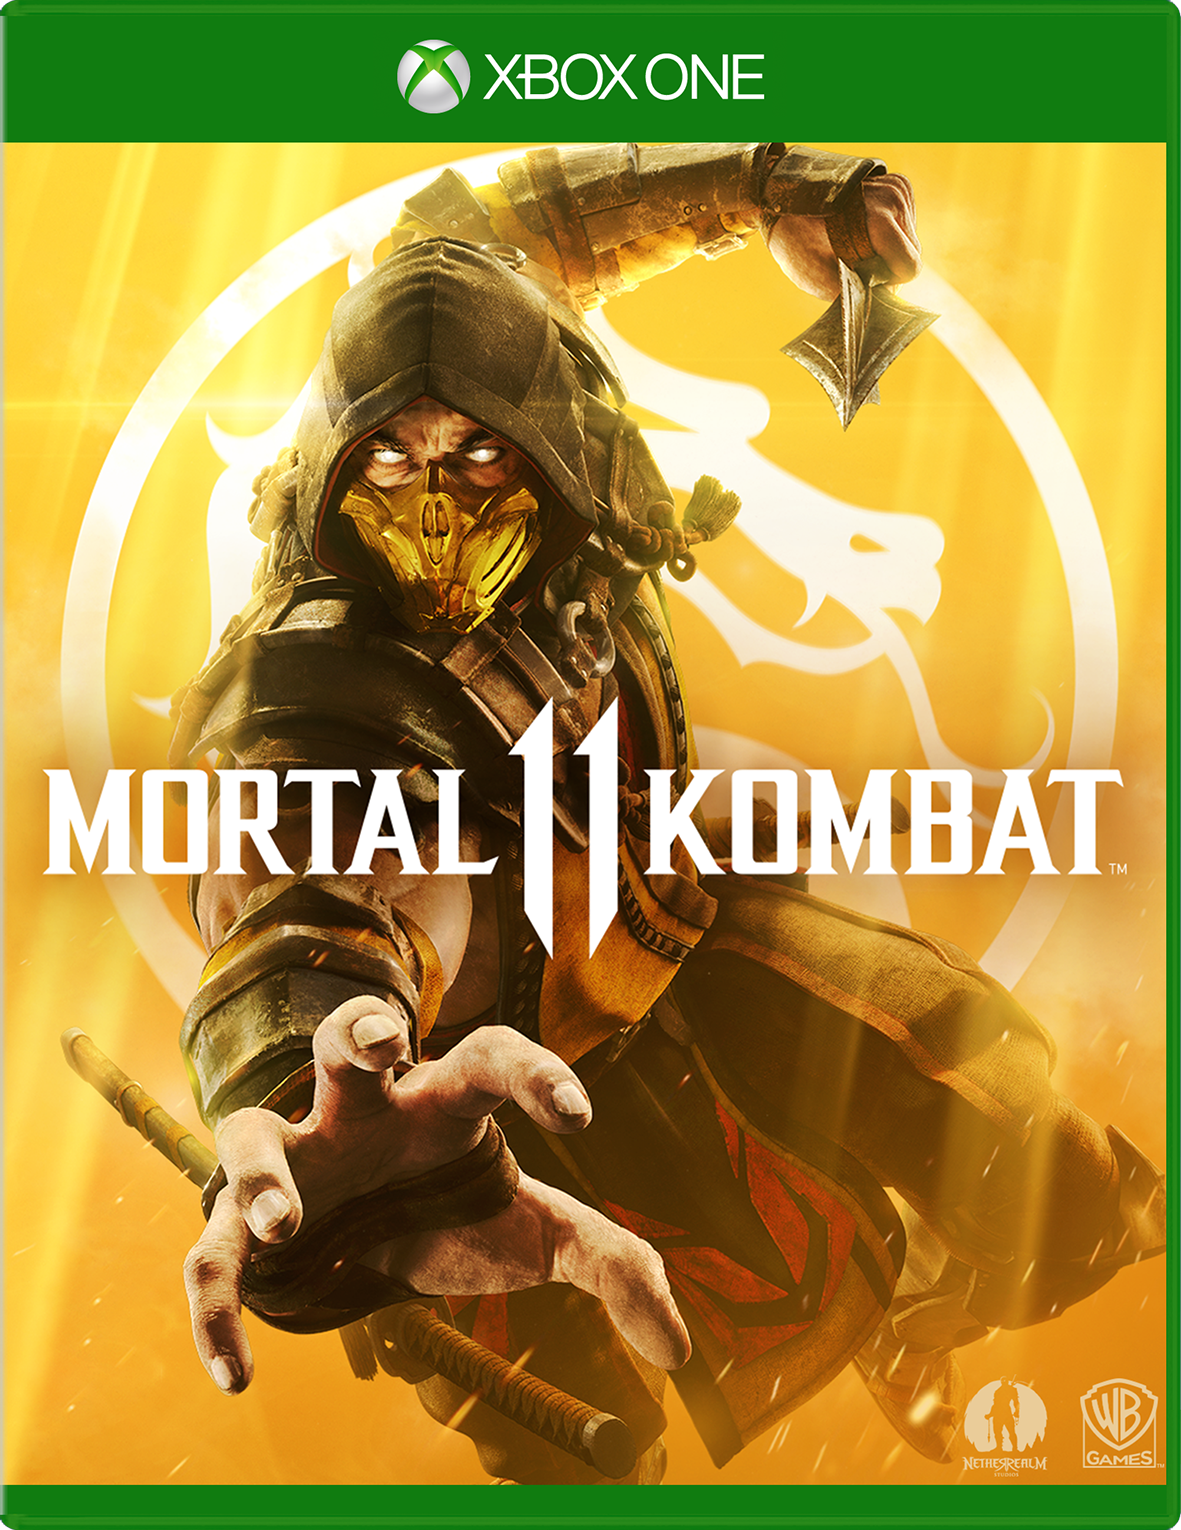 Mortal Kombat 11 game box for Xbox One